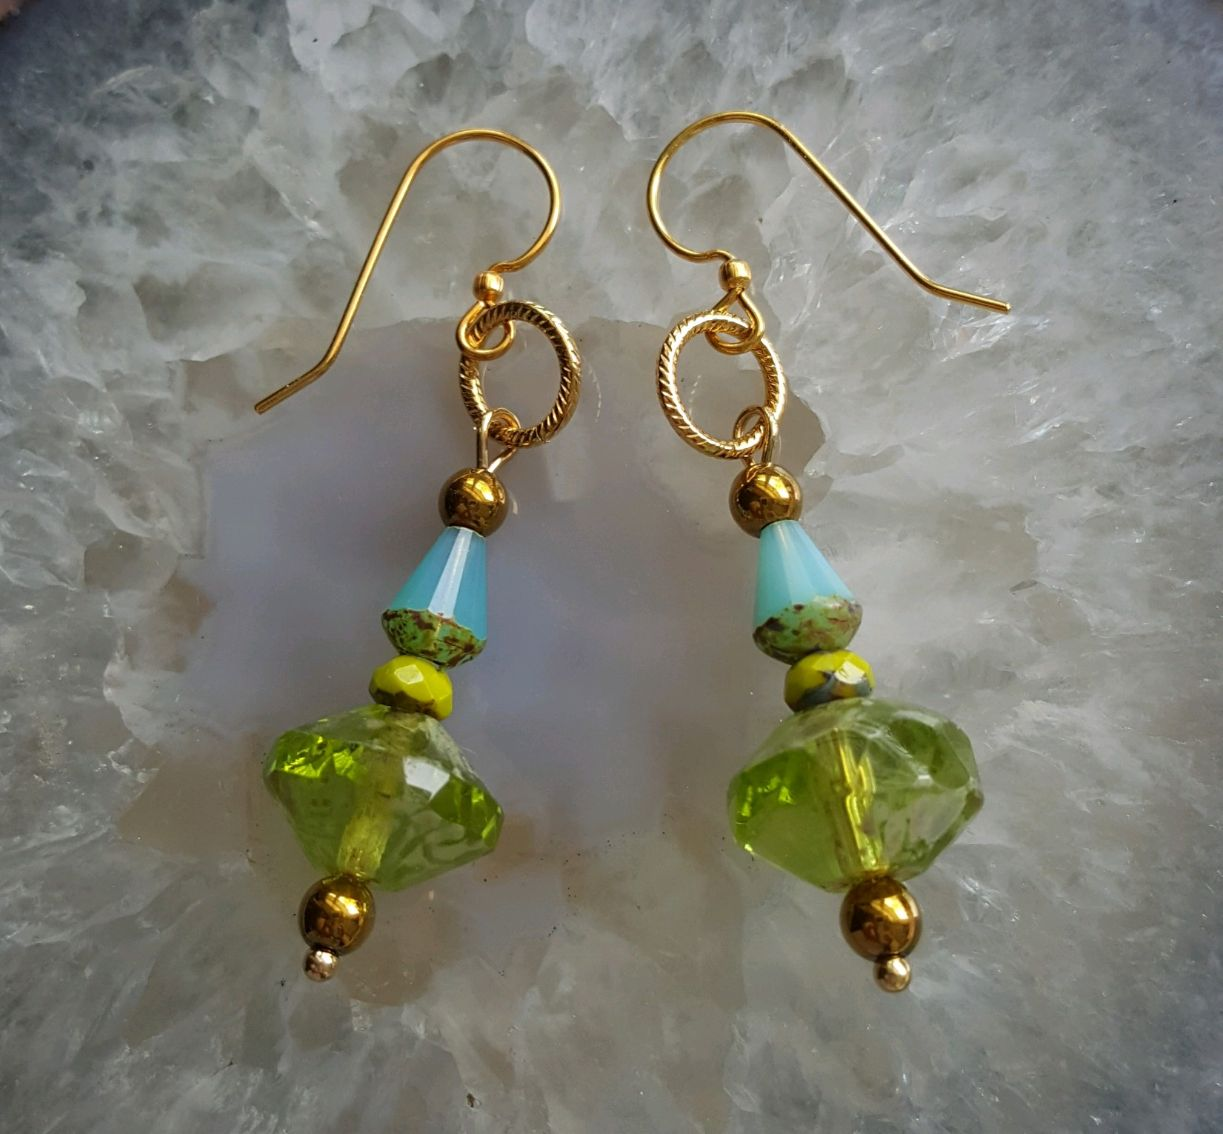 Blues and greens for spring, vintage glass